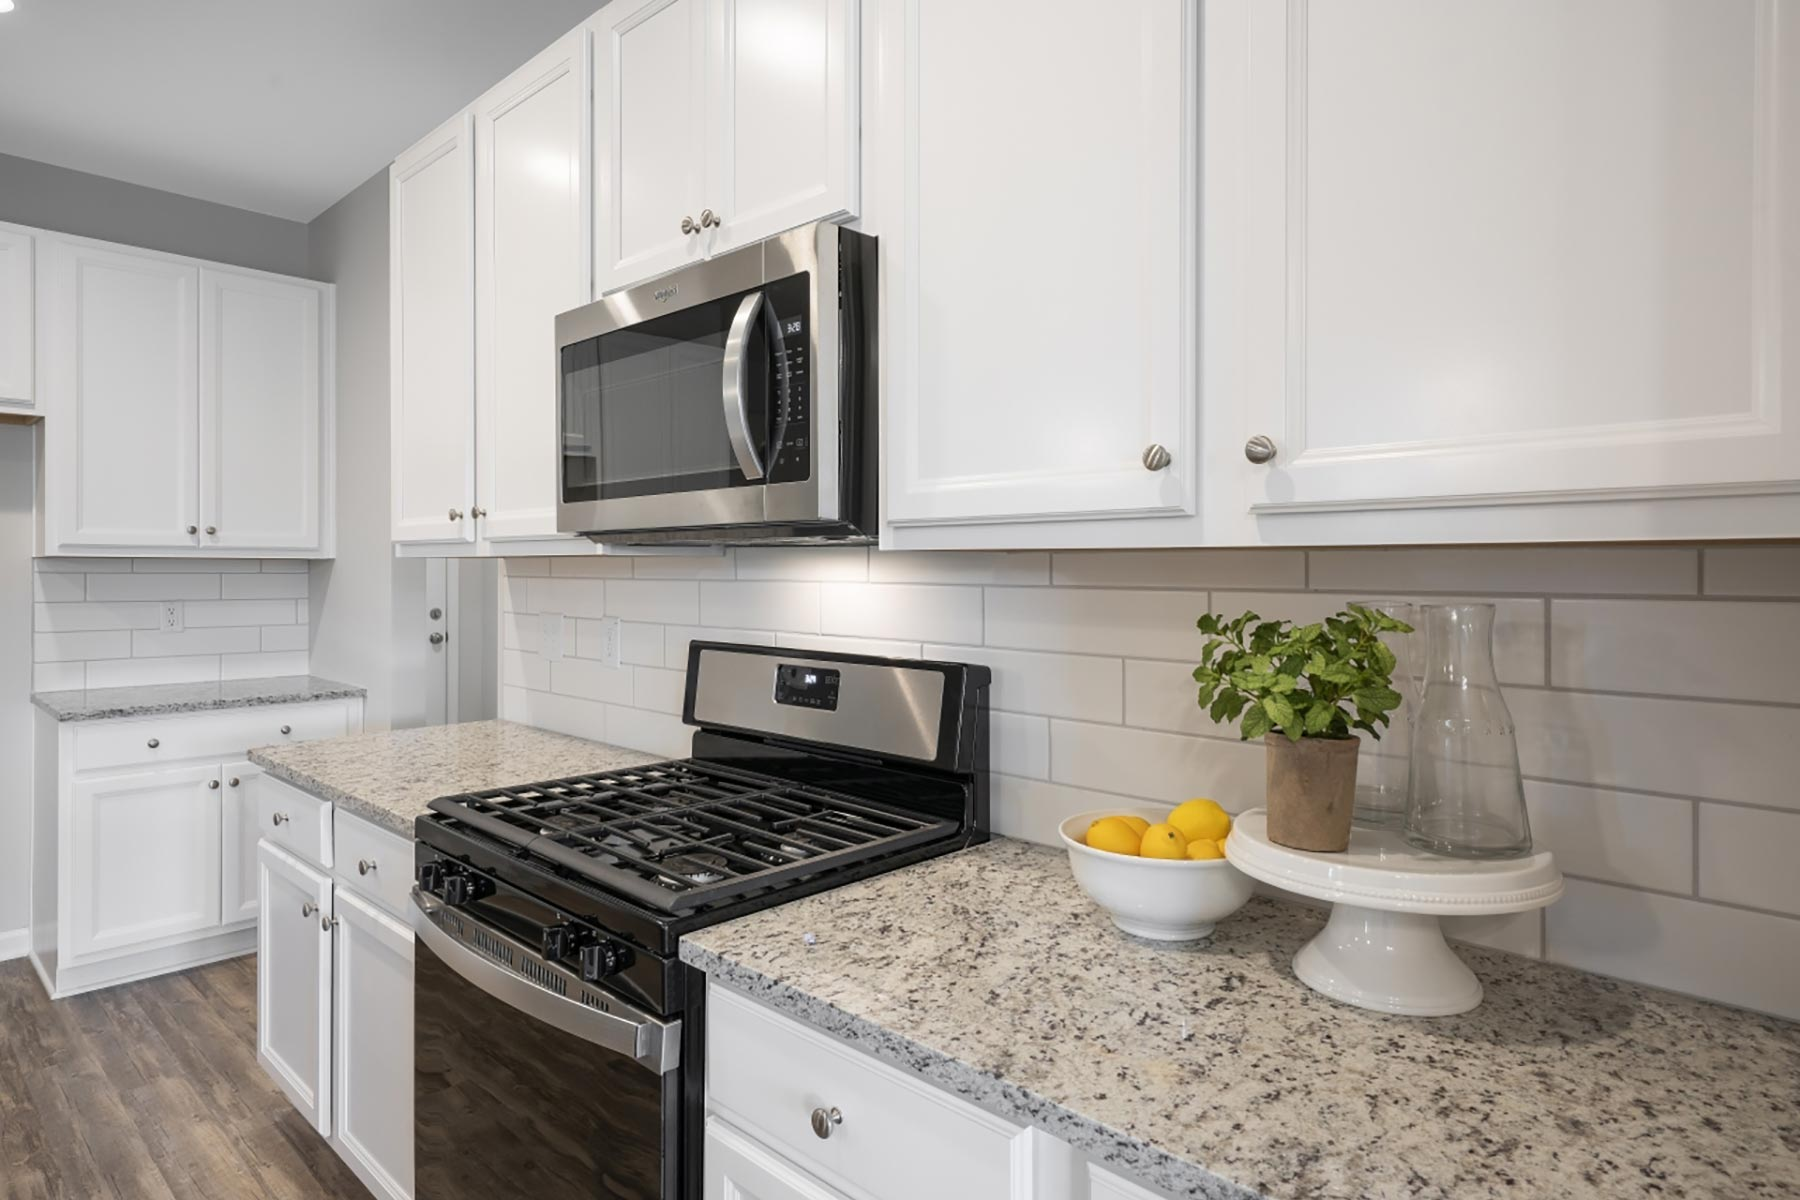 Evelyn Plan rdu-bedford-evelyn-kitchen at Bedford at Flowers Plantation in Clayton North Carolina by Mattamy Homes